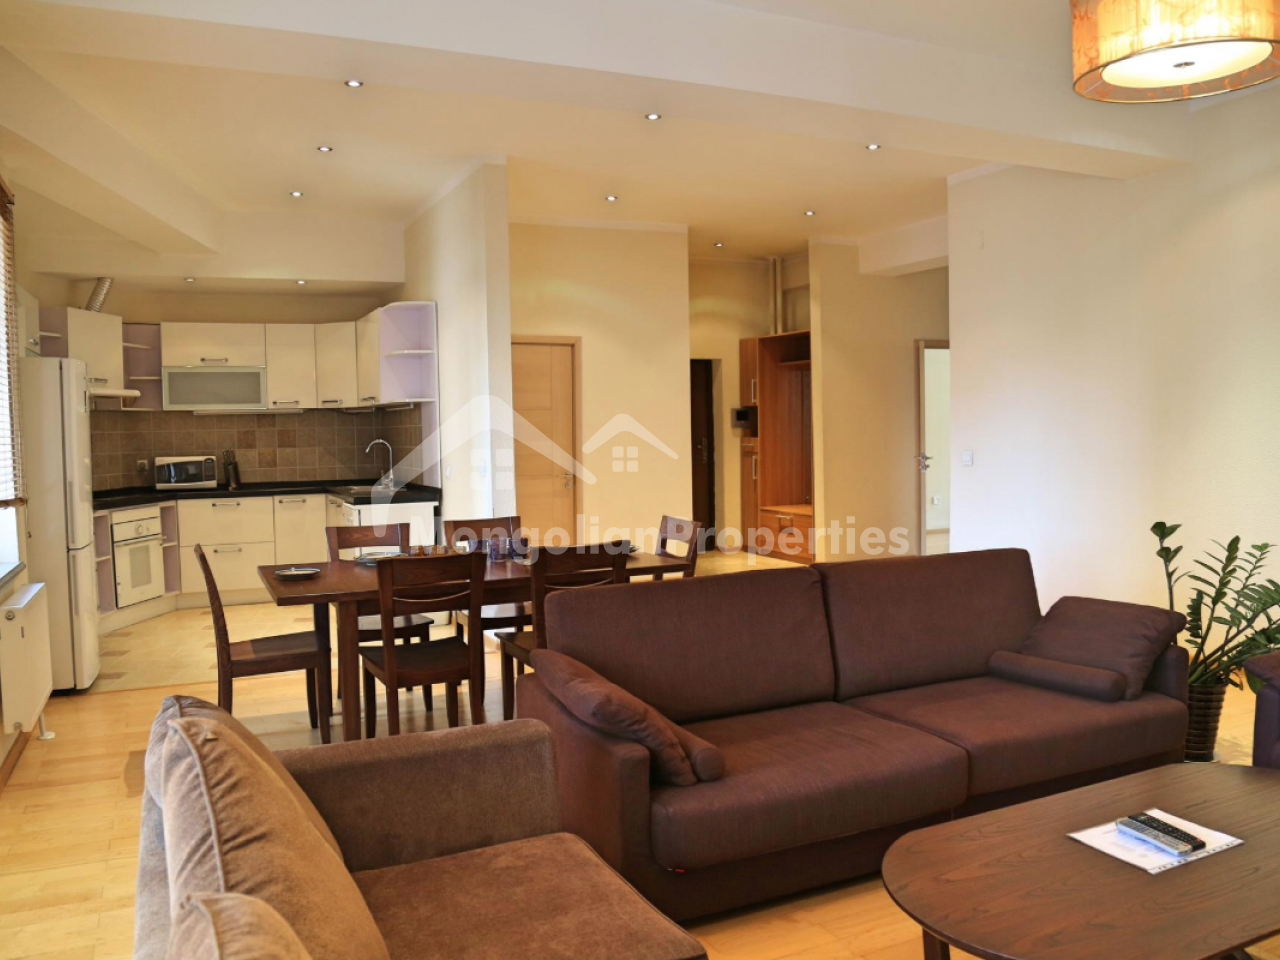 Cozy 3 bedroom apartment is for rent at the Regency Residence